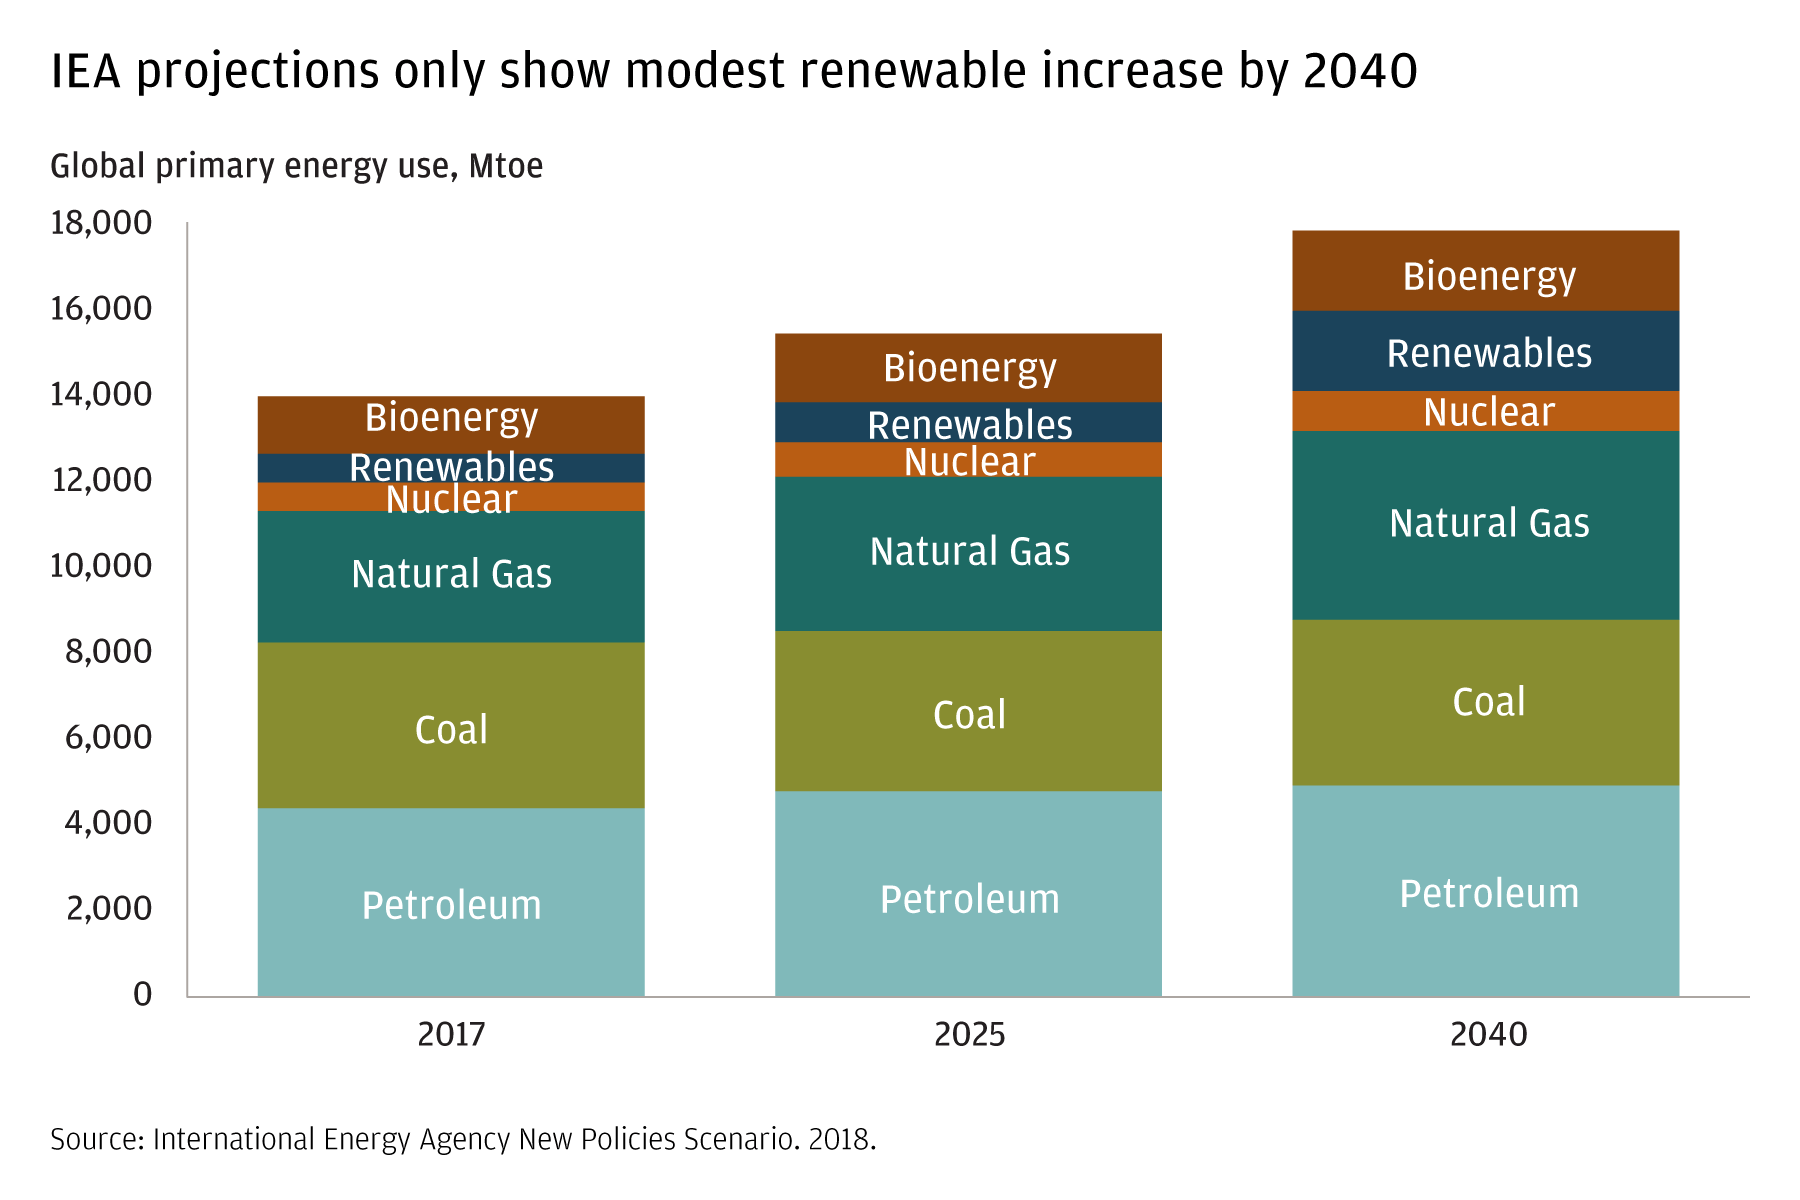 This table shows the extremely modest growth in renewable energy sources between now and 2040. The energy source expected to grow the most is natural gas.